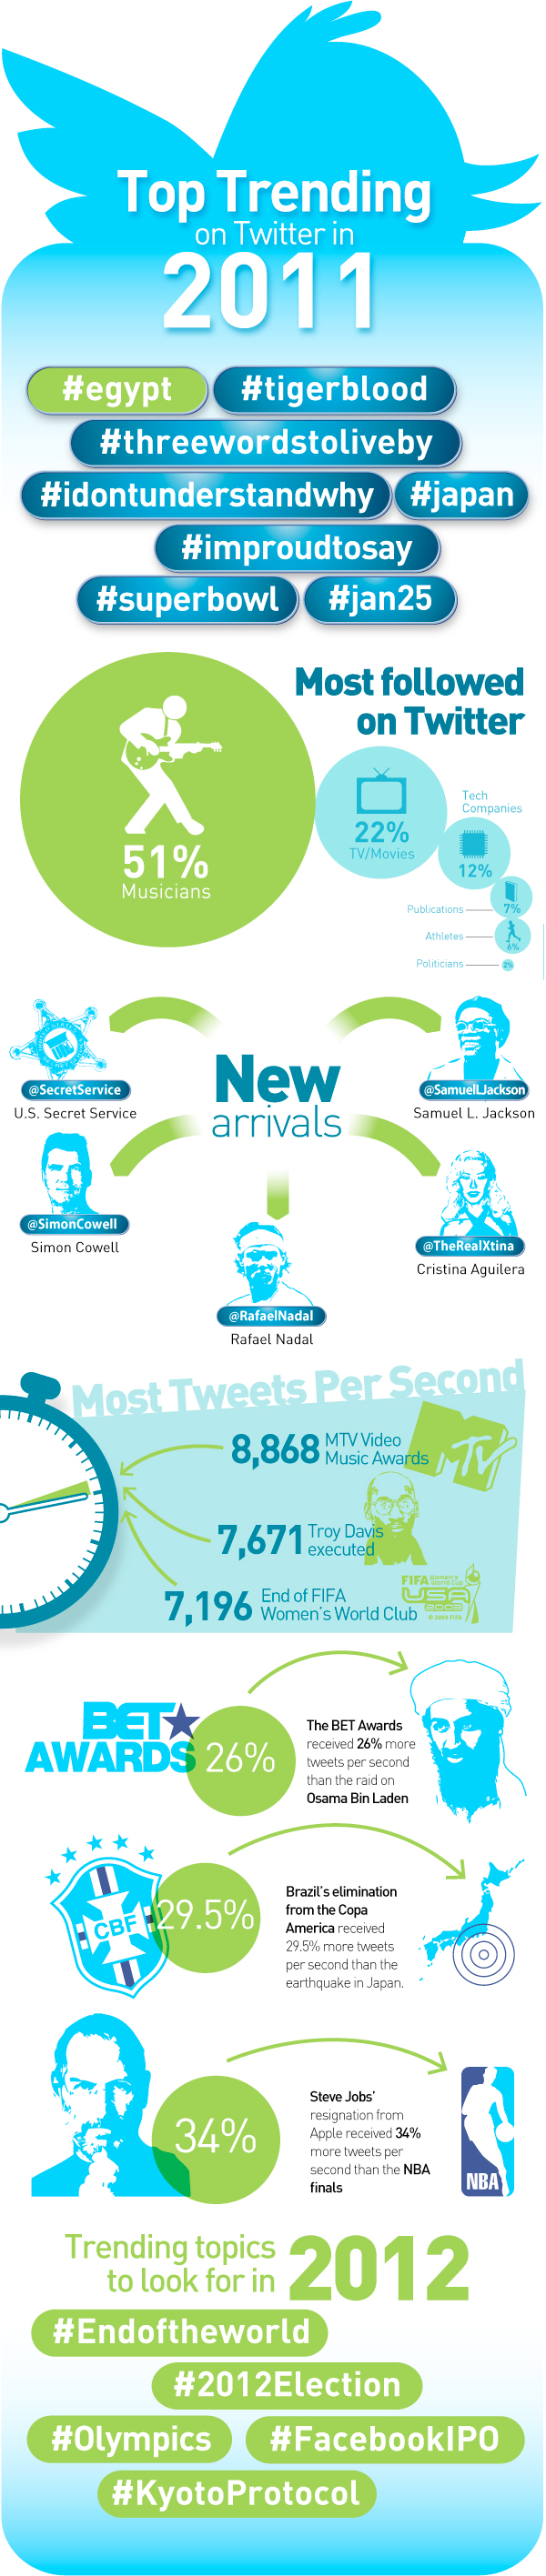 A Year in Twitter: Top Trends of 2011